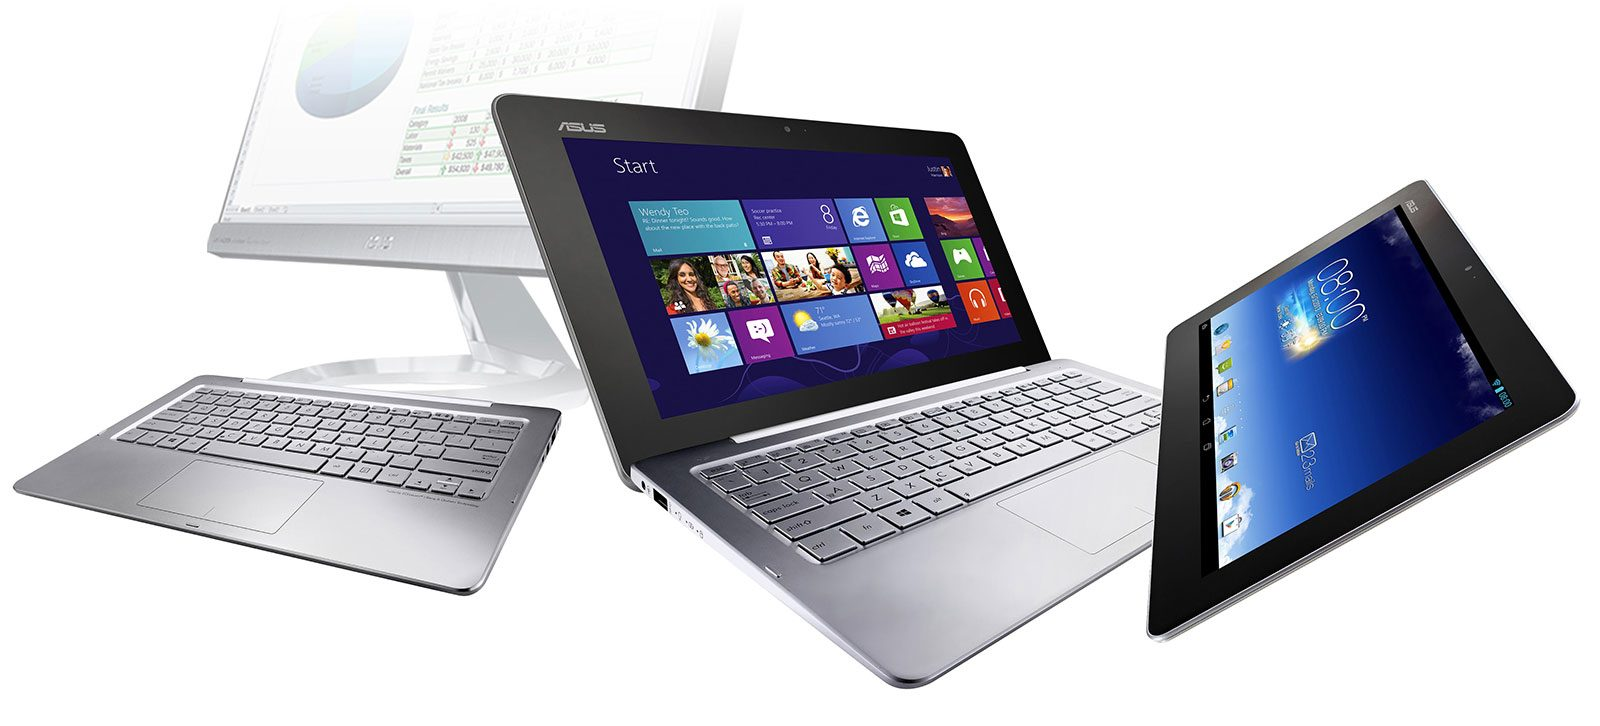 Asus Transformer Book Trio - tablet, desktop and laptop, all-in-one